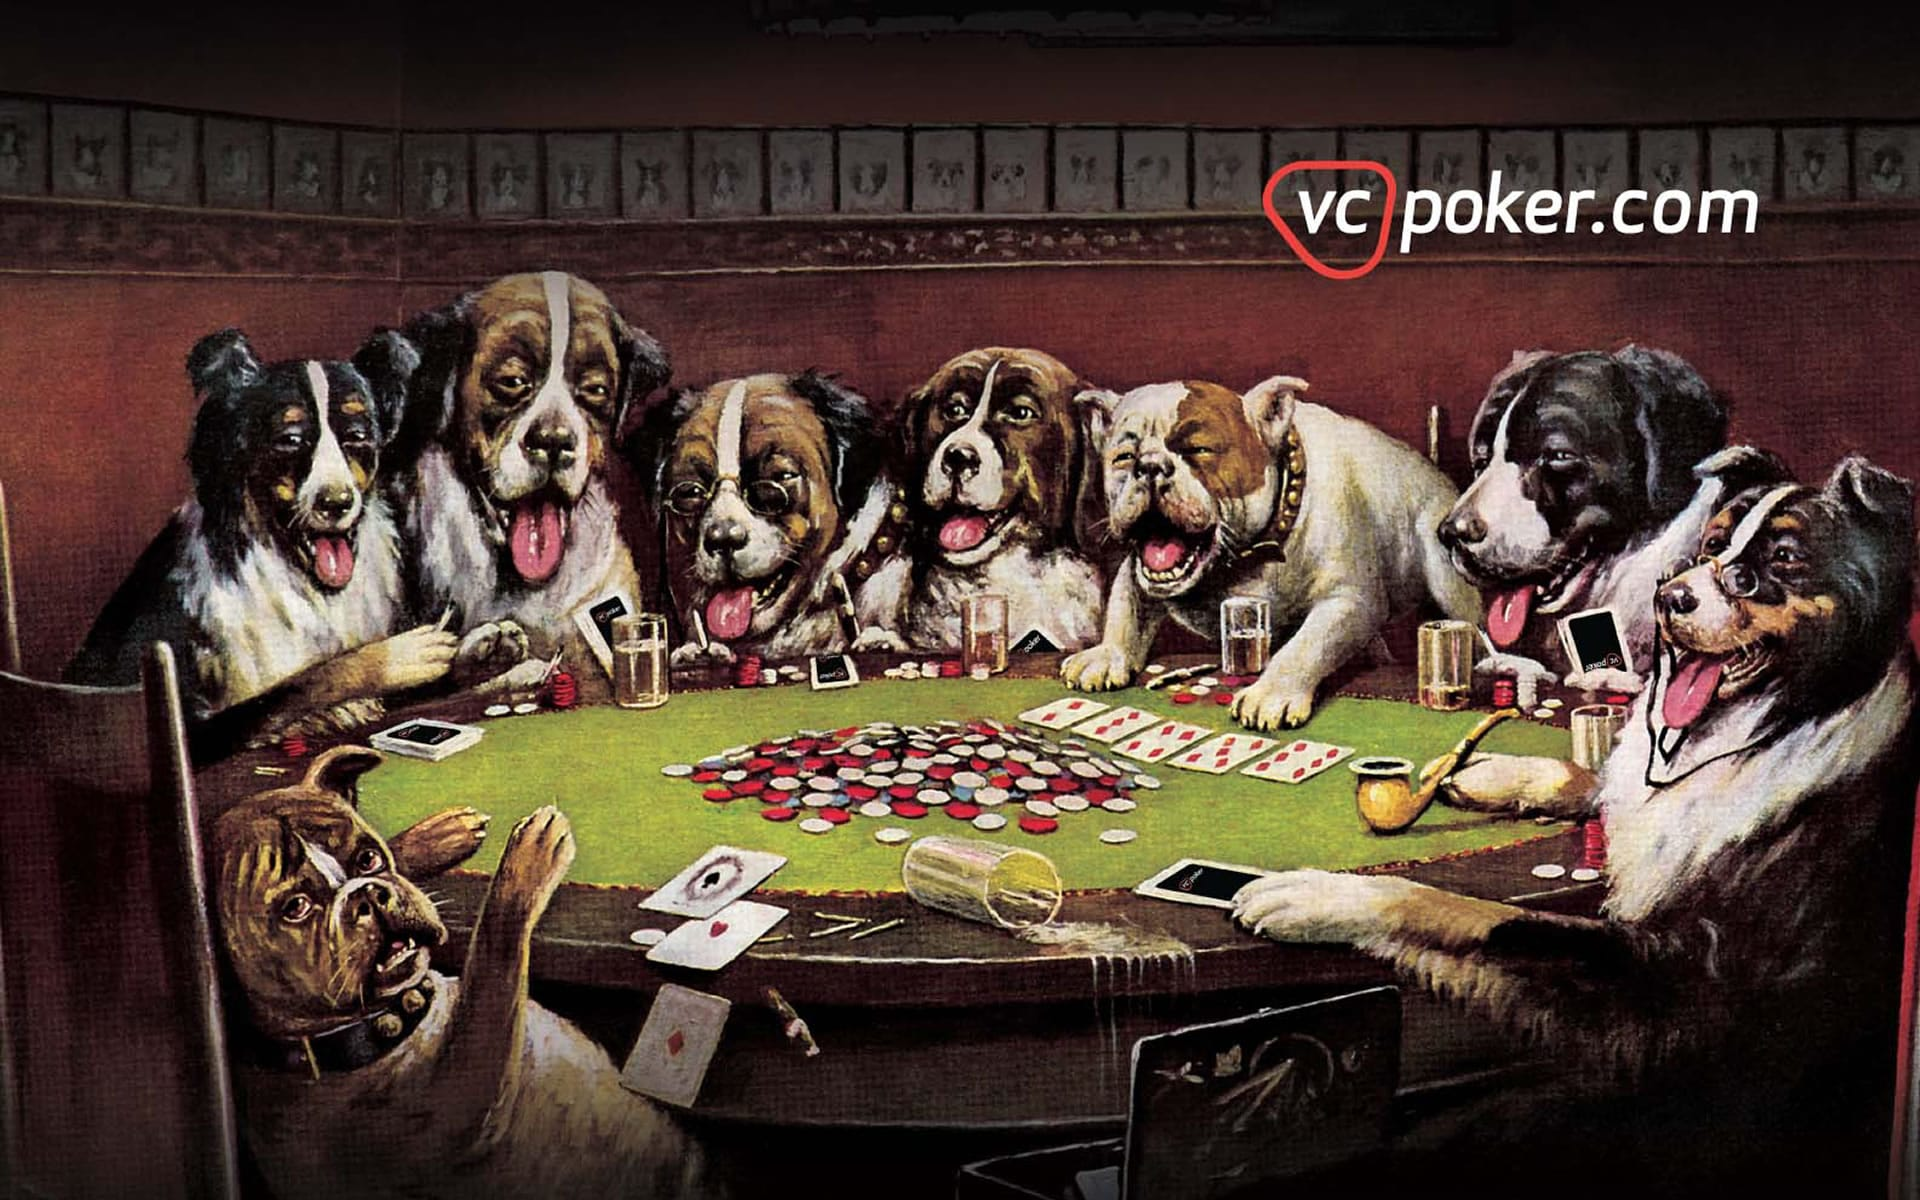 Love the dogs casino casino abs alberta